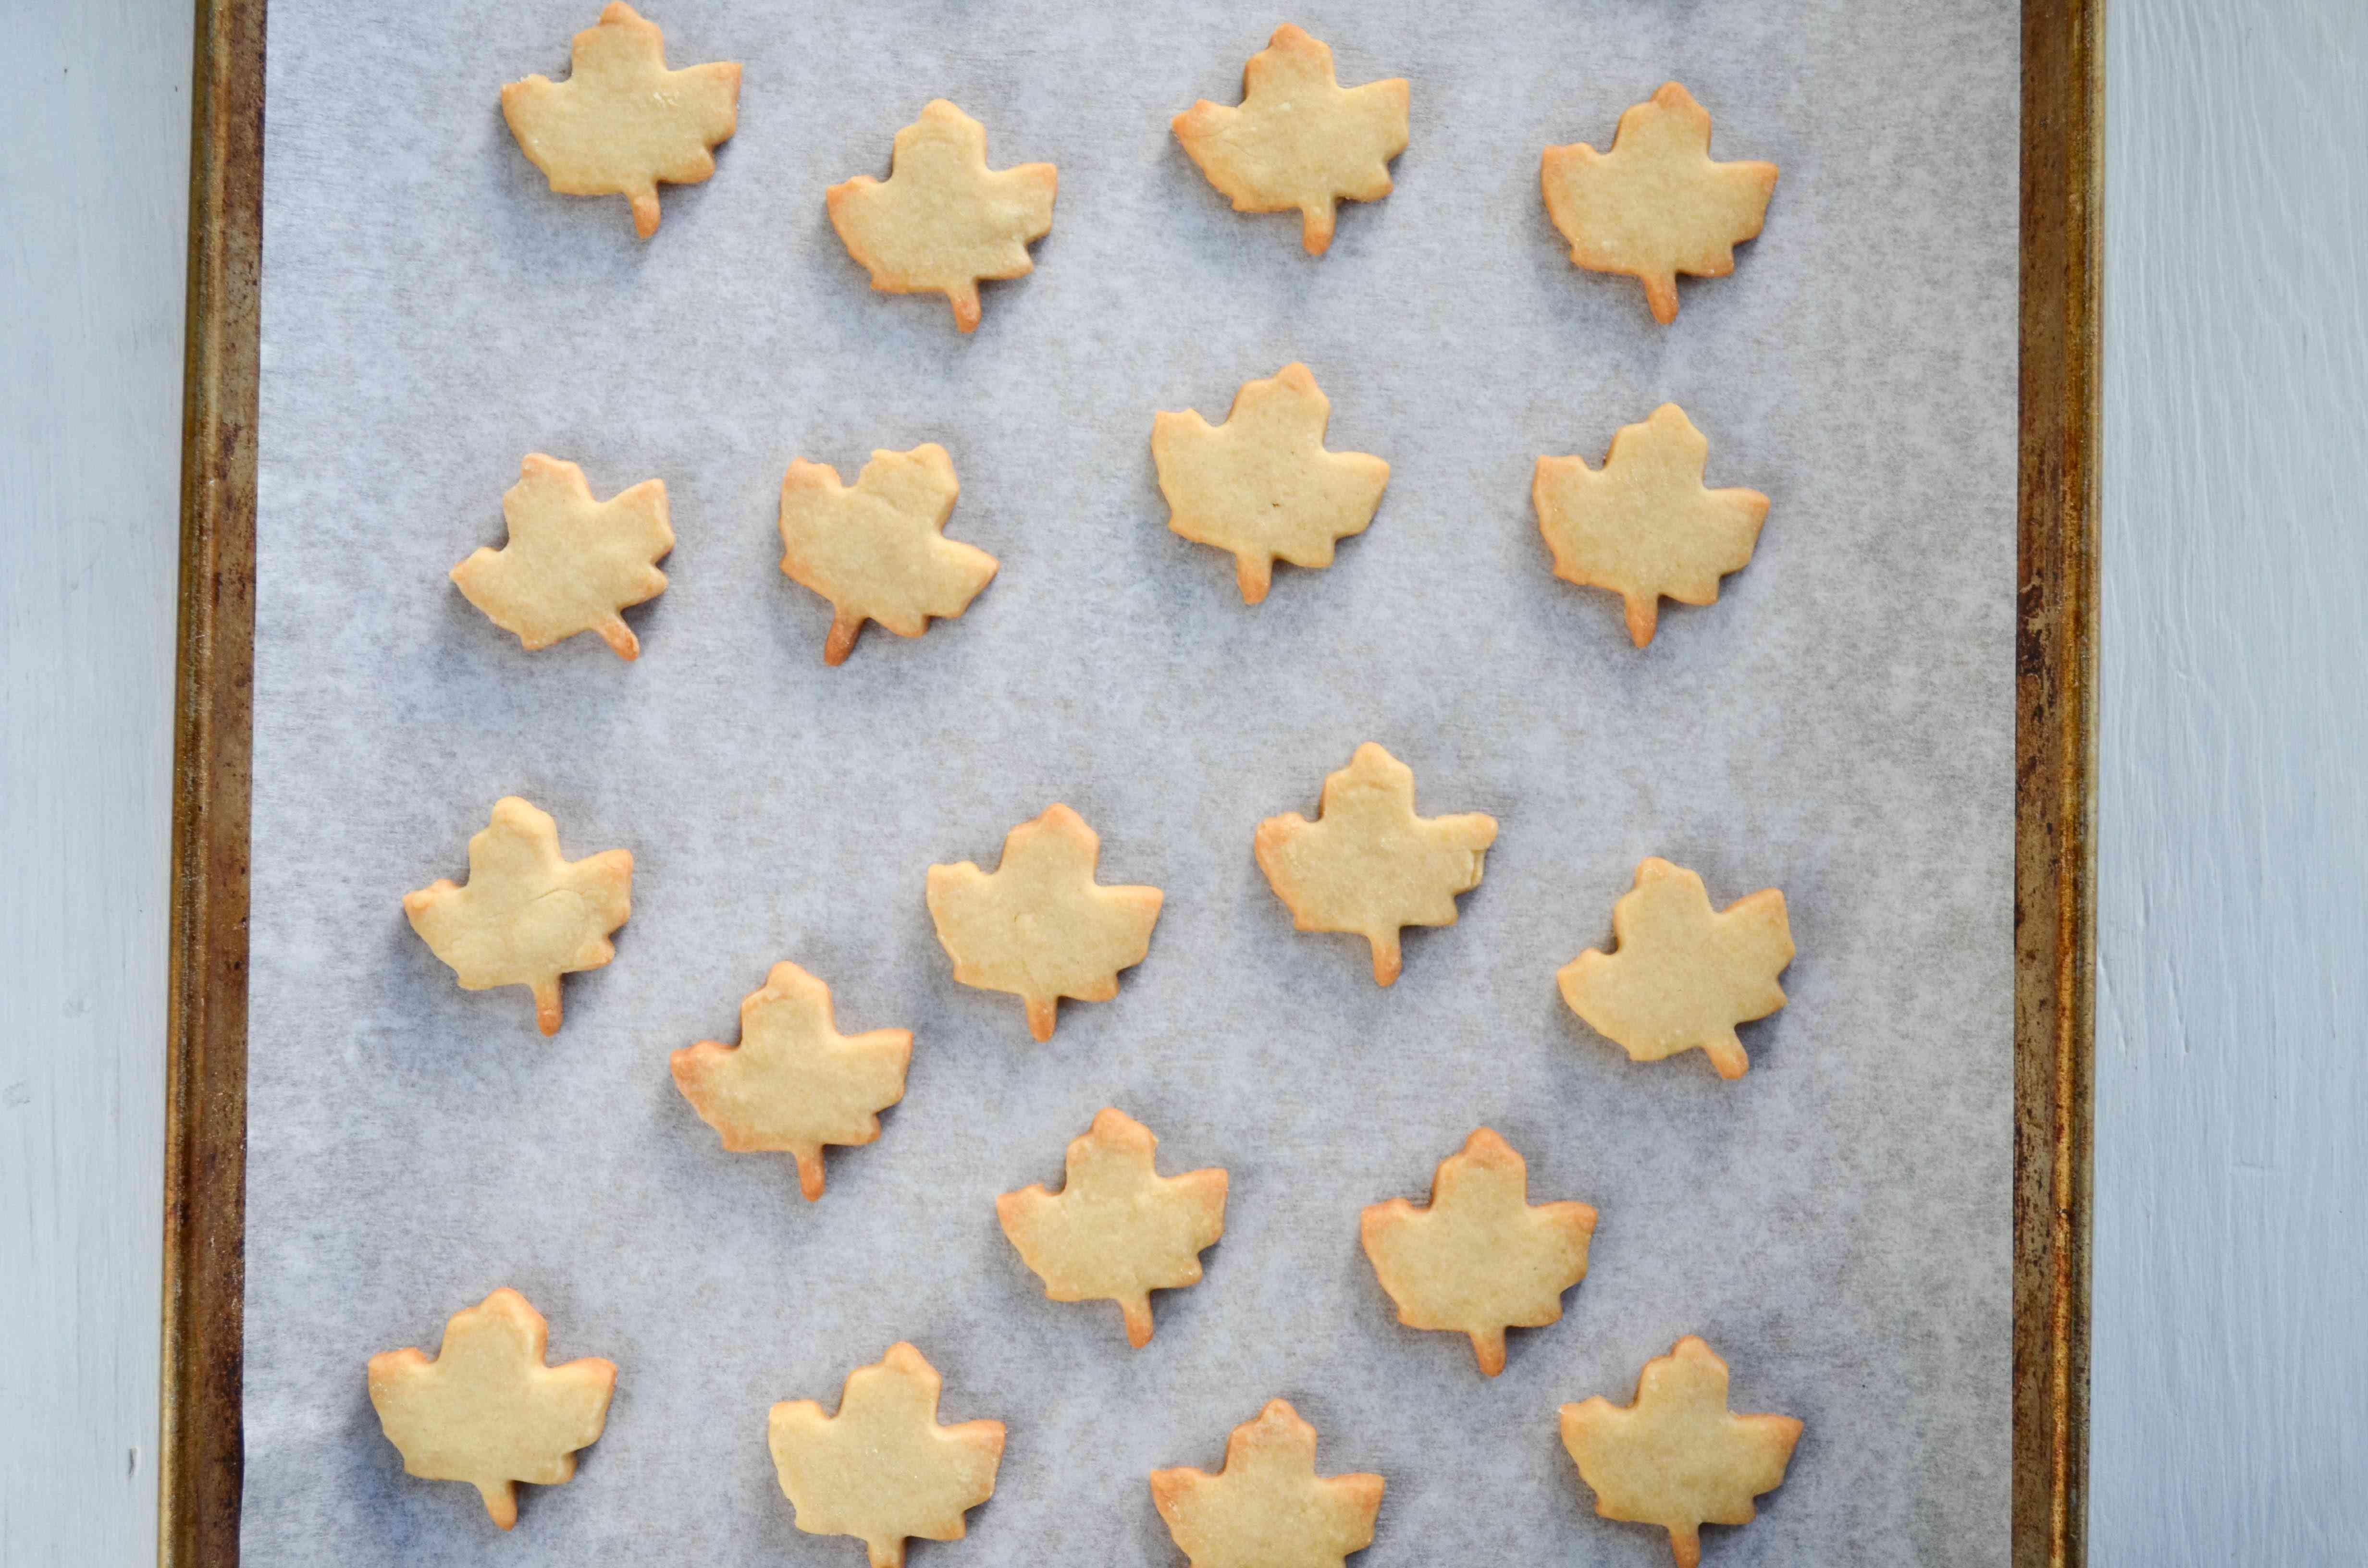 Bake the maple cookies